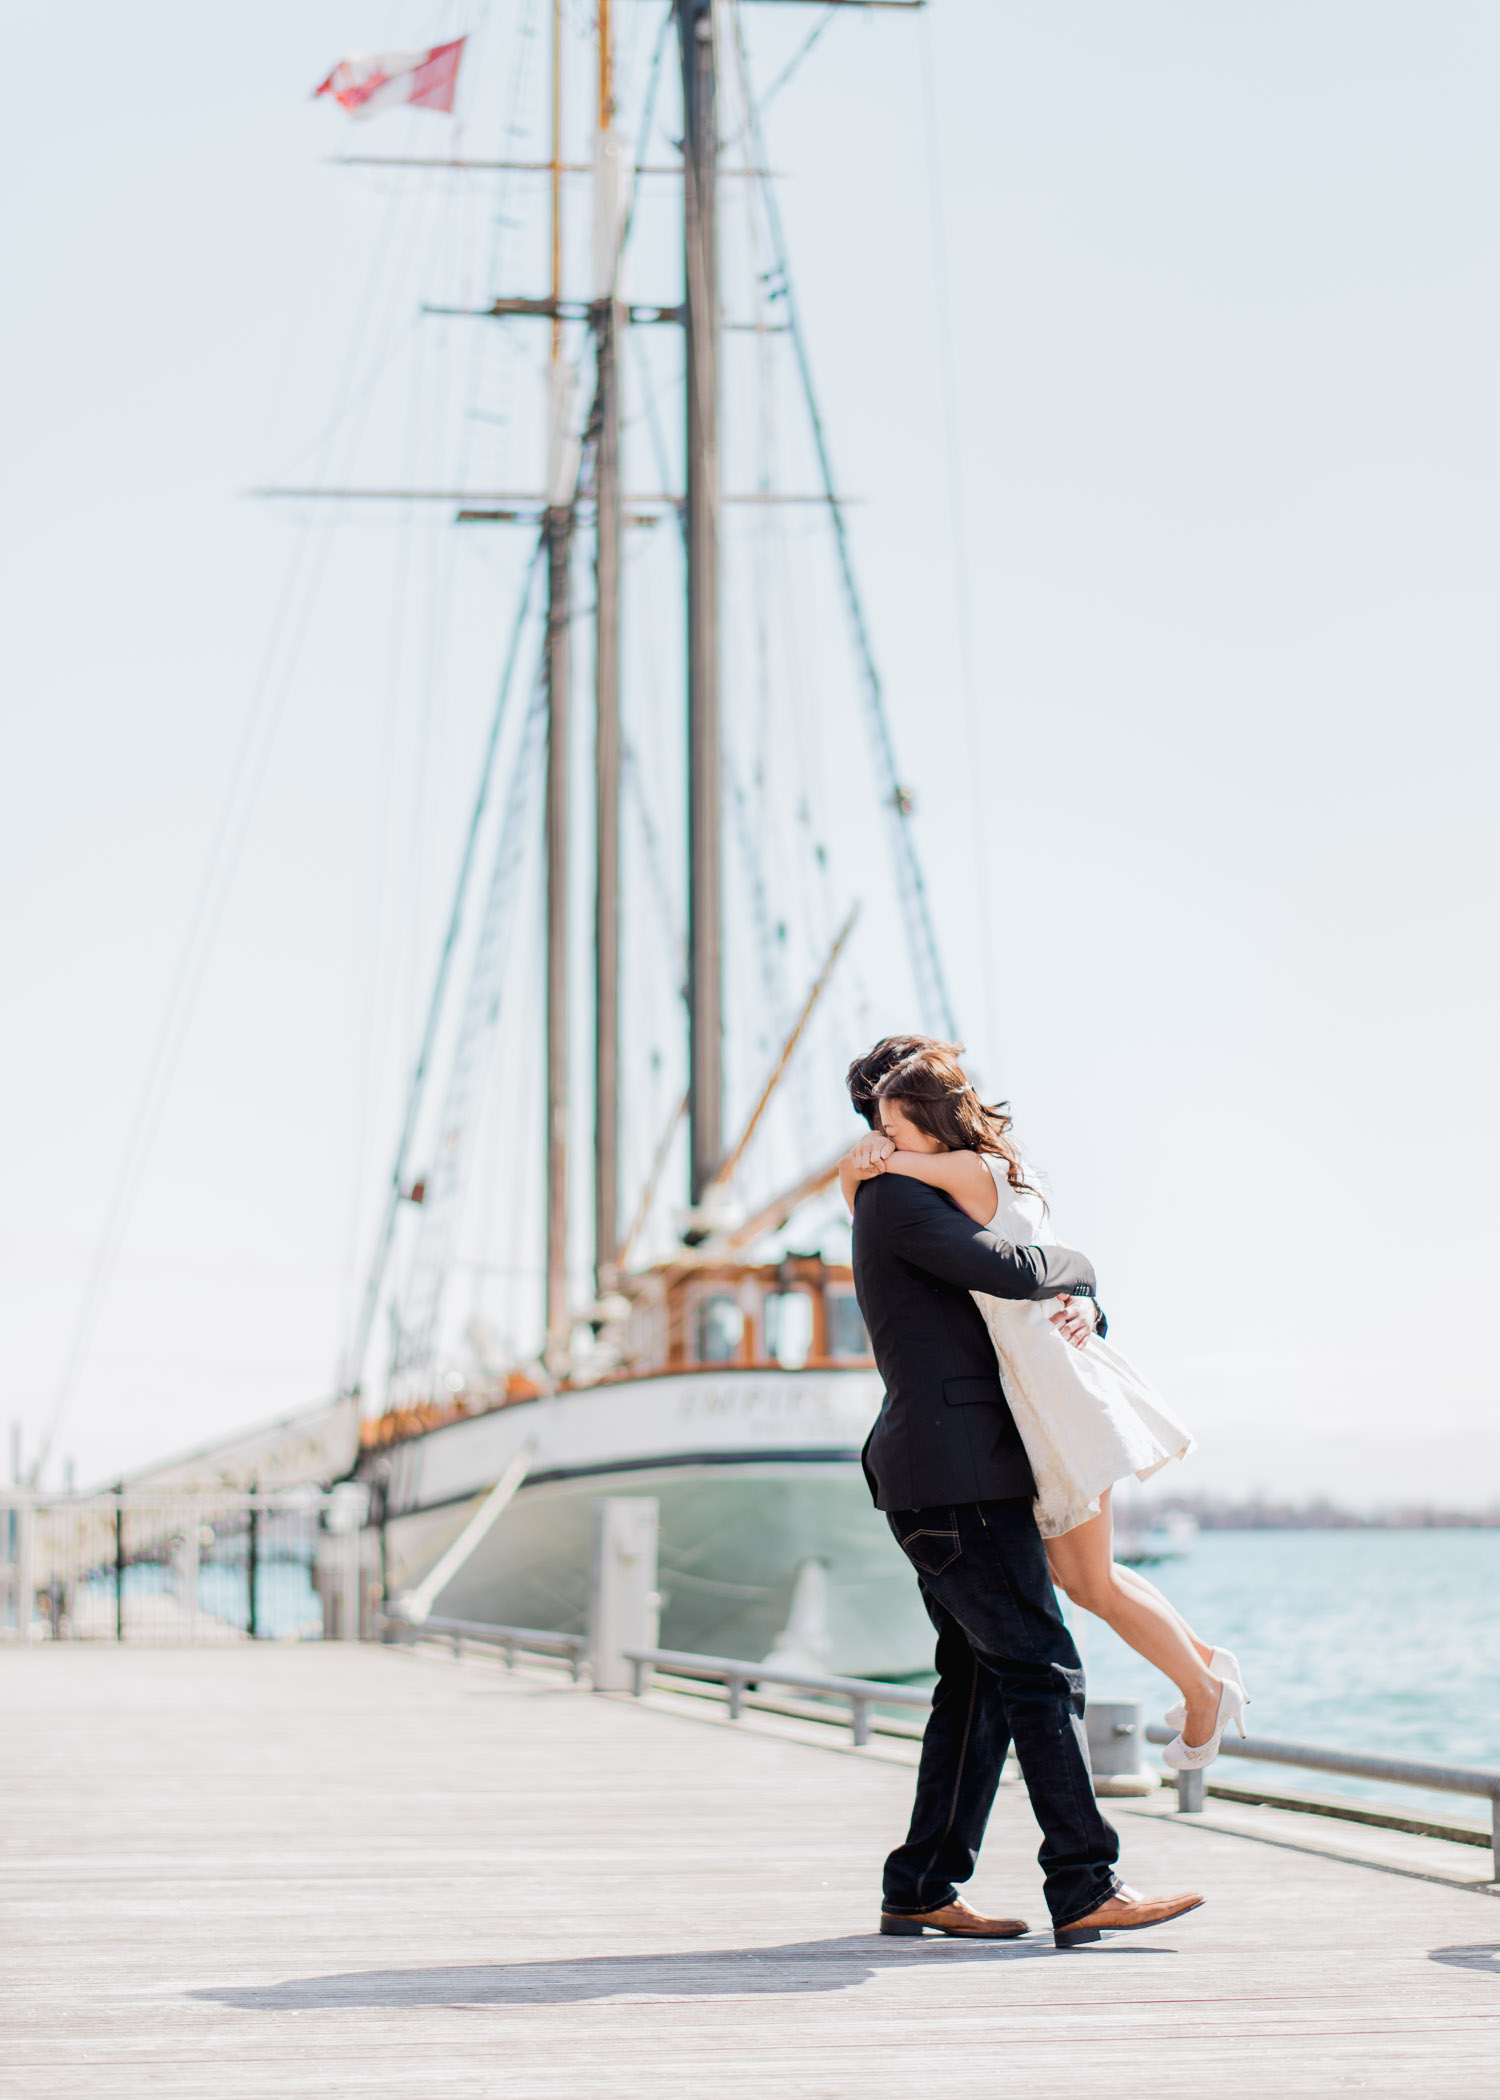 Eric spins Joan in the air during an engagement session at Harbourfront Toronto